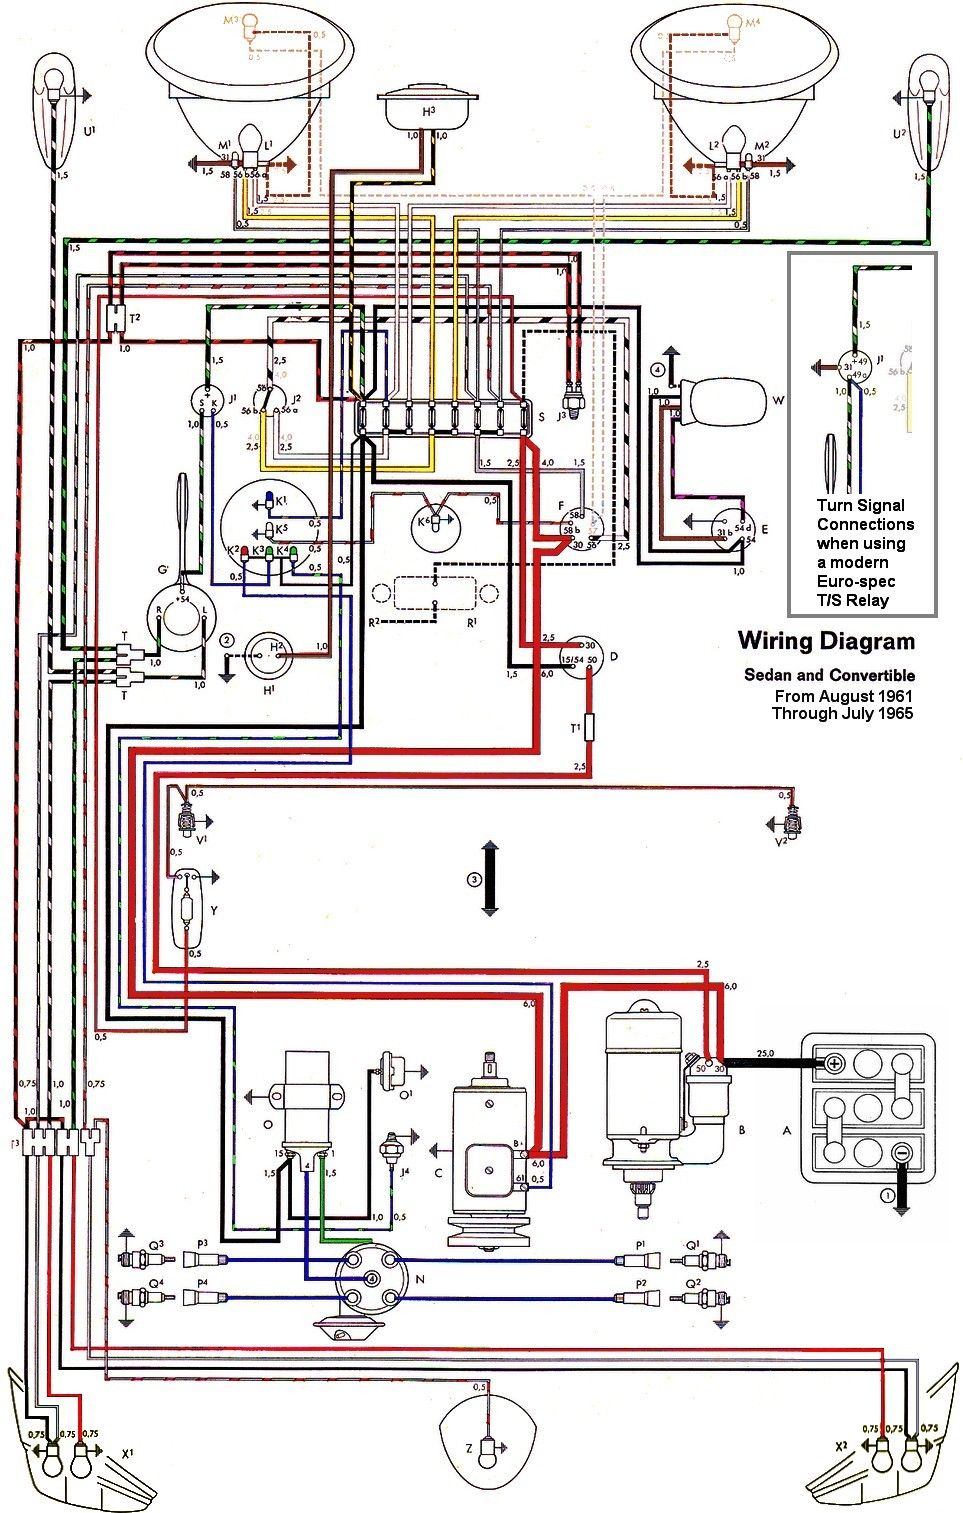 Vw Transporter Engine Diagram Another Blog About Wiring T5 1973 Parts Library Rh 67 Yoobi De 25